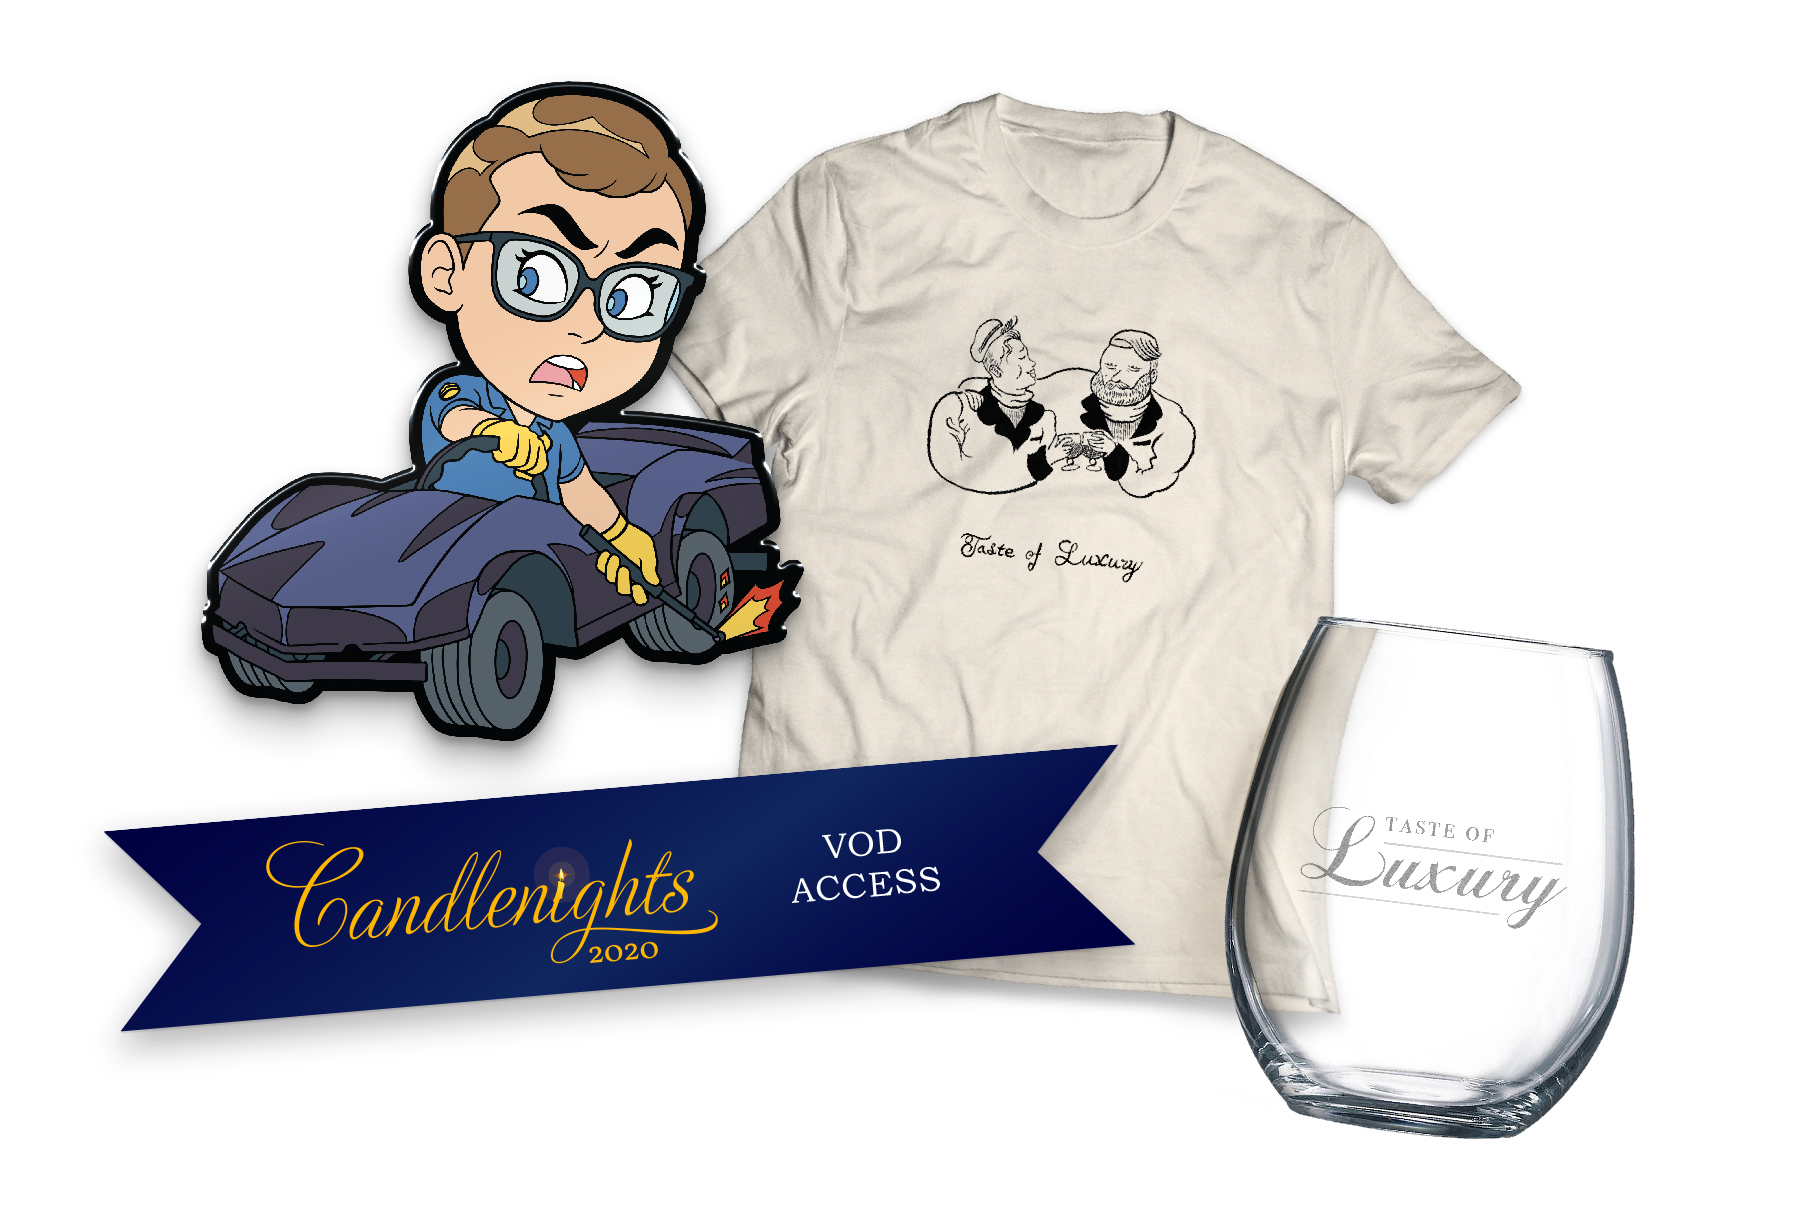 "Image of the four February McElroy merch items. The top left is an anime stylized enamel pin of Griffin in a children's race car. Next to him is a T-shirt that says ""Taste of Luxury"" in script with a stylized illustration of Justin and Dwight clinking wine glasses together. The bottom right is a stemless wineglass that says ""Taste of Luxury"" in etched satin script. The bottom left is a dark blue banner that says ""Candlenights 2020 VOD access""."